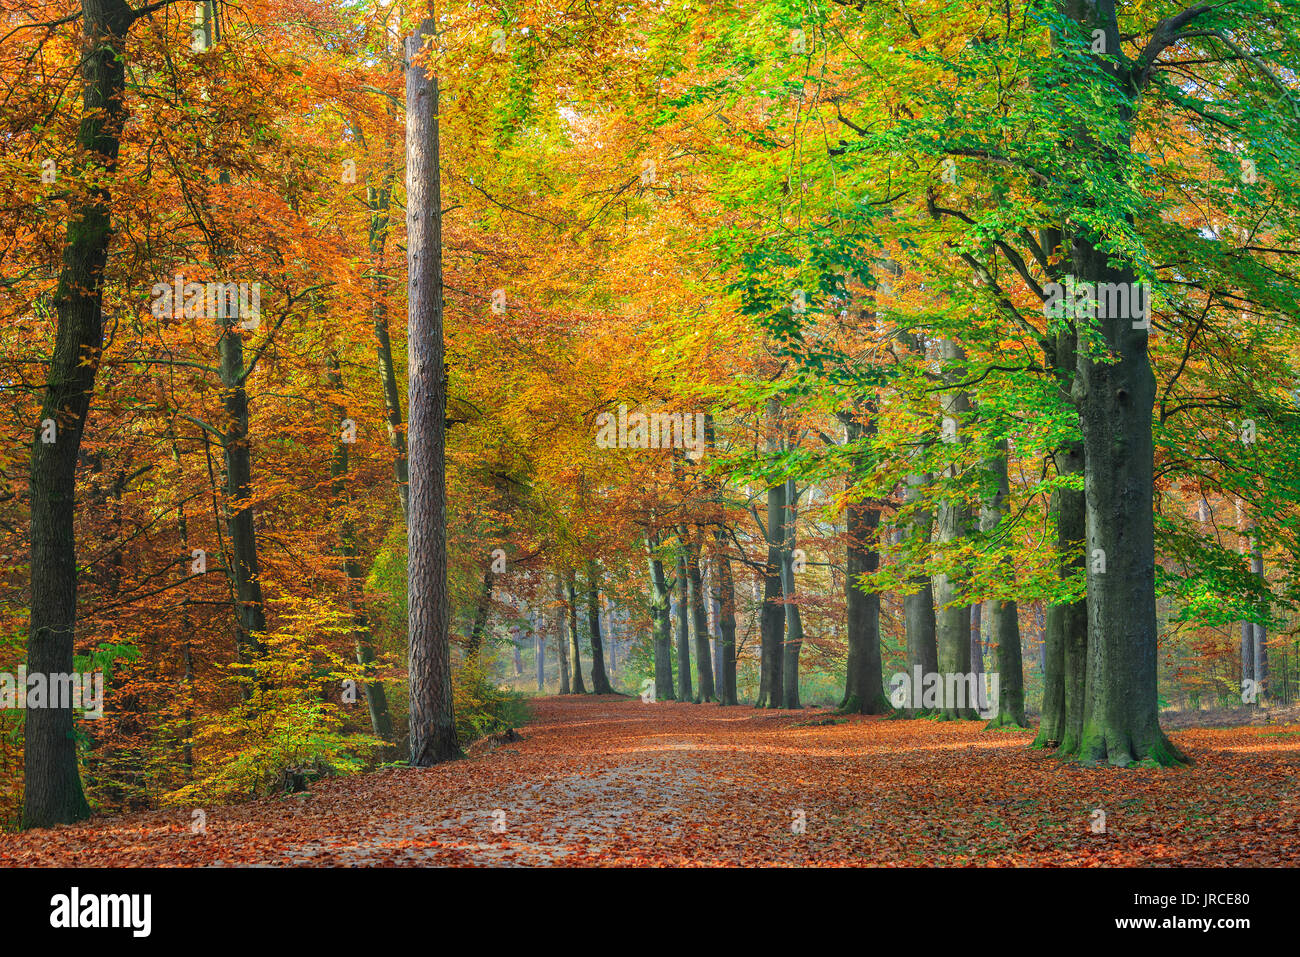 "Colorful tree foliage on the beech trees along a path through a forest in autumn in National Park ""De Hoge Veluwe"", in the Netherlands. - Stock Image"